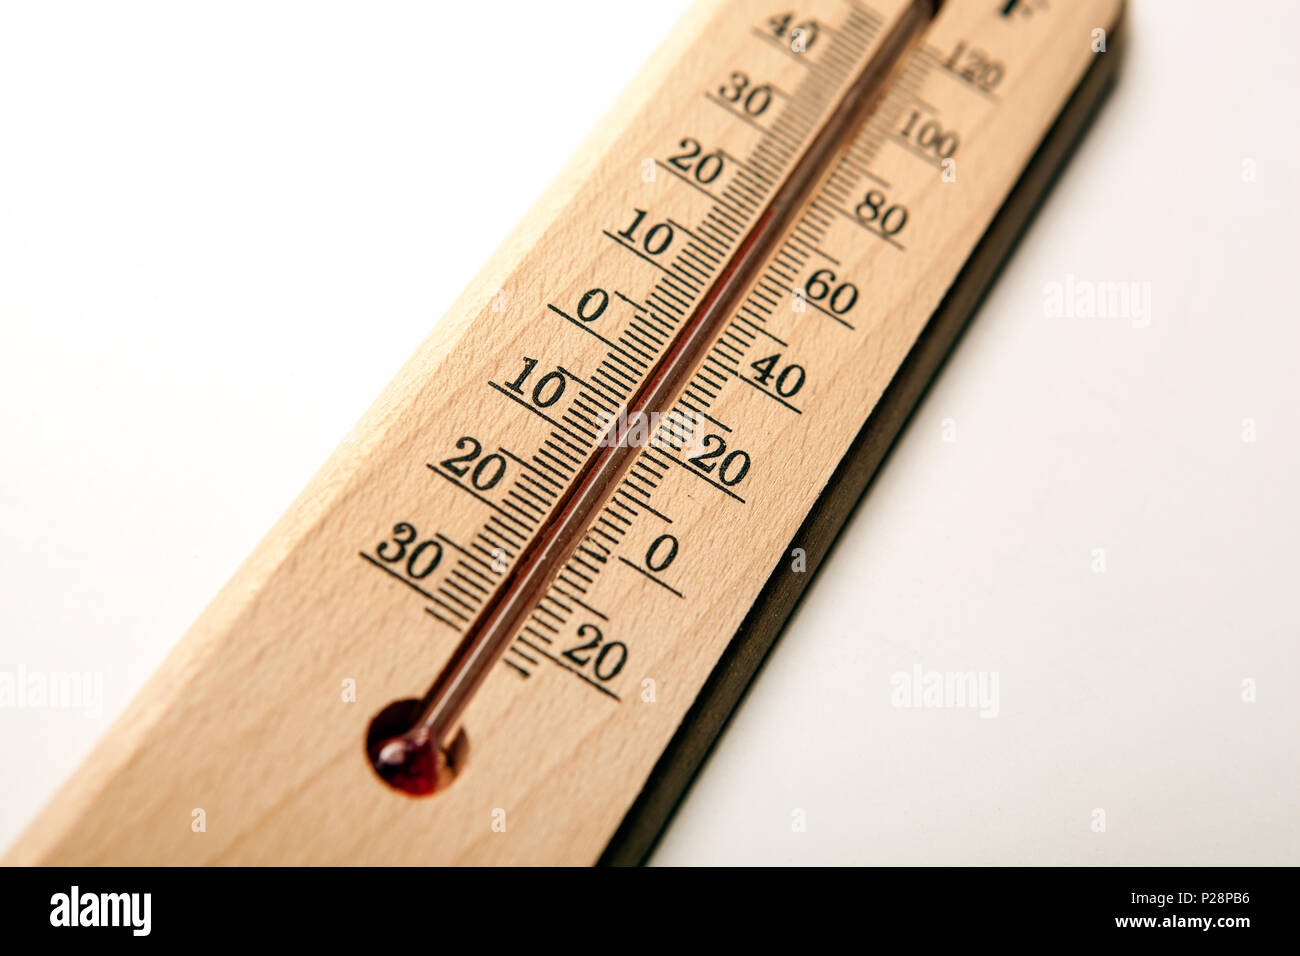 Wall Thermometer Stock Photos & Wall Thermometer Stock Images - Alamy